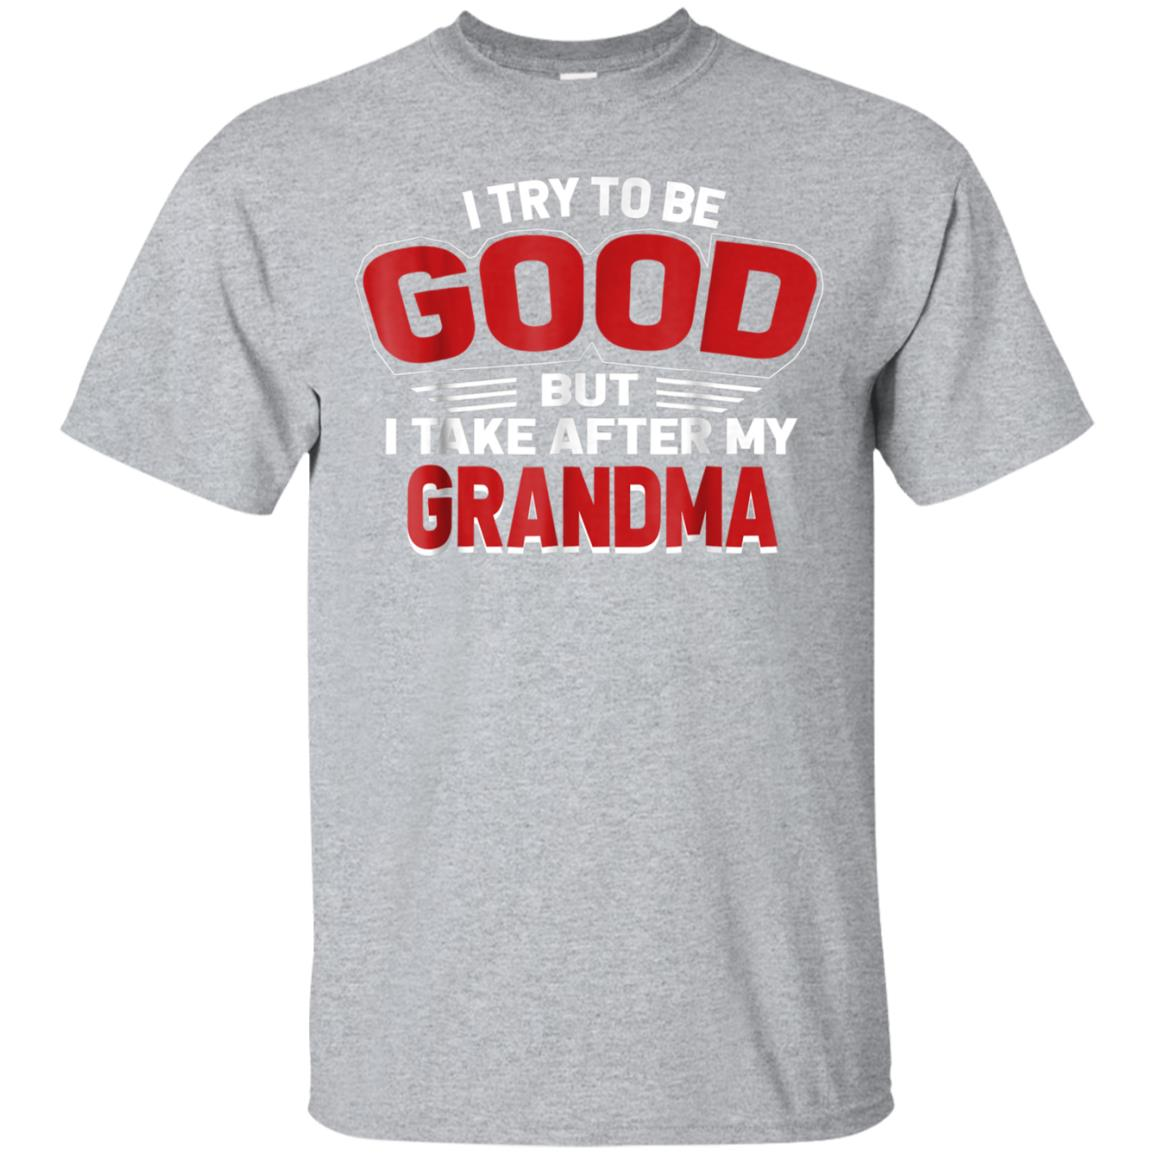 I Try To Be Good But I Take After My Grandma T-shirt 99promocode